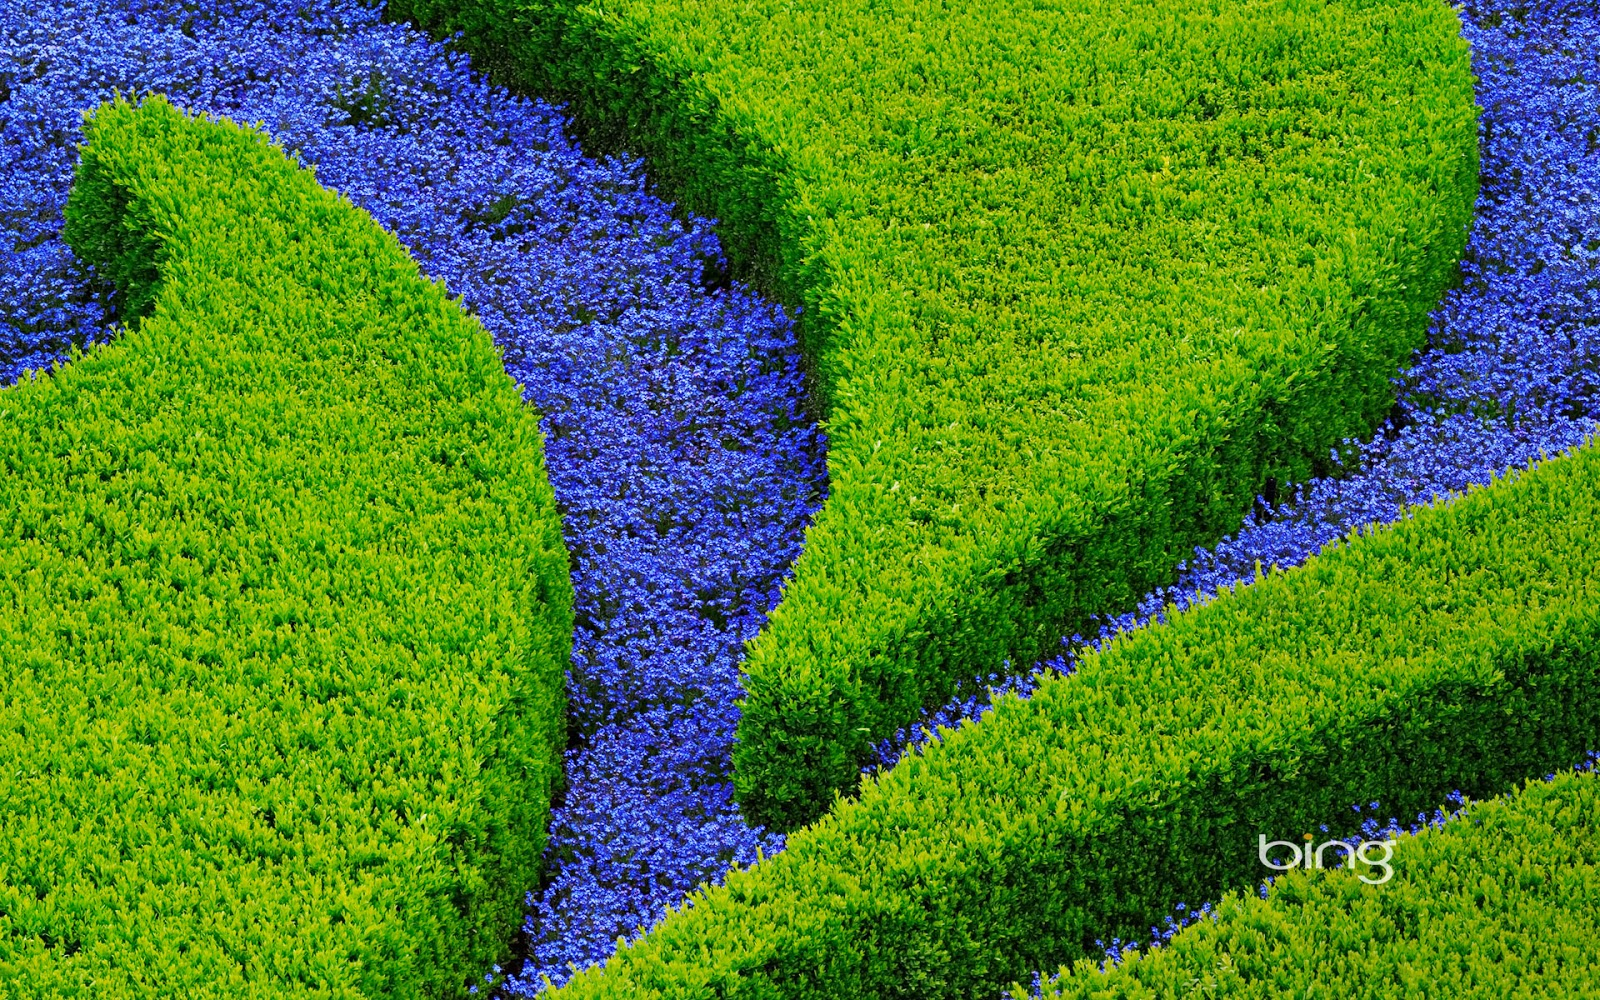 Vrtba Garden, Prague, Czech Republic (© William Manning/Corbis)